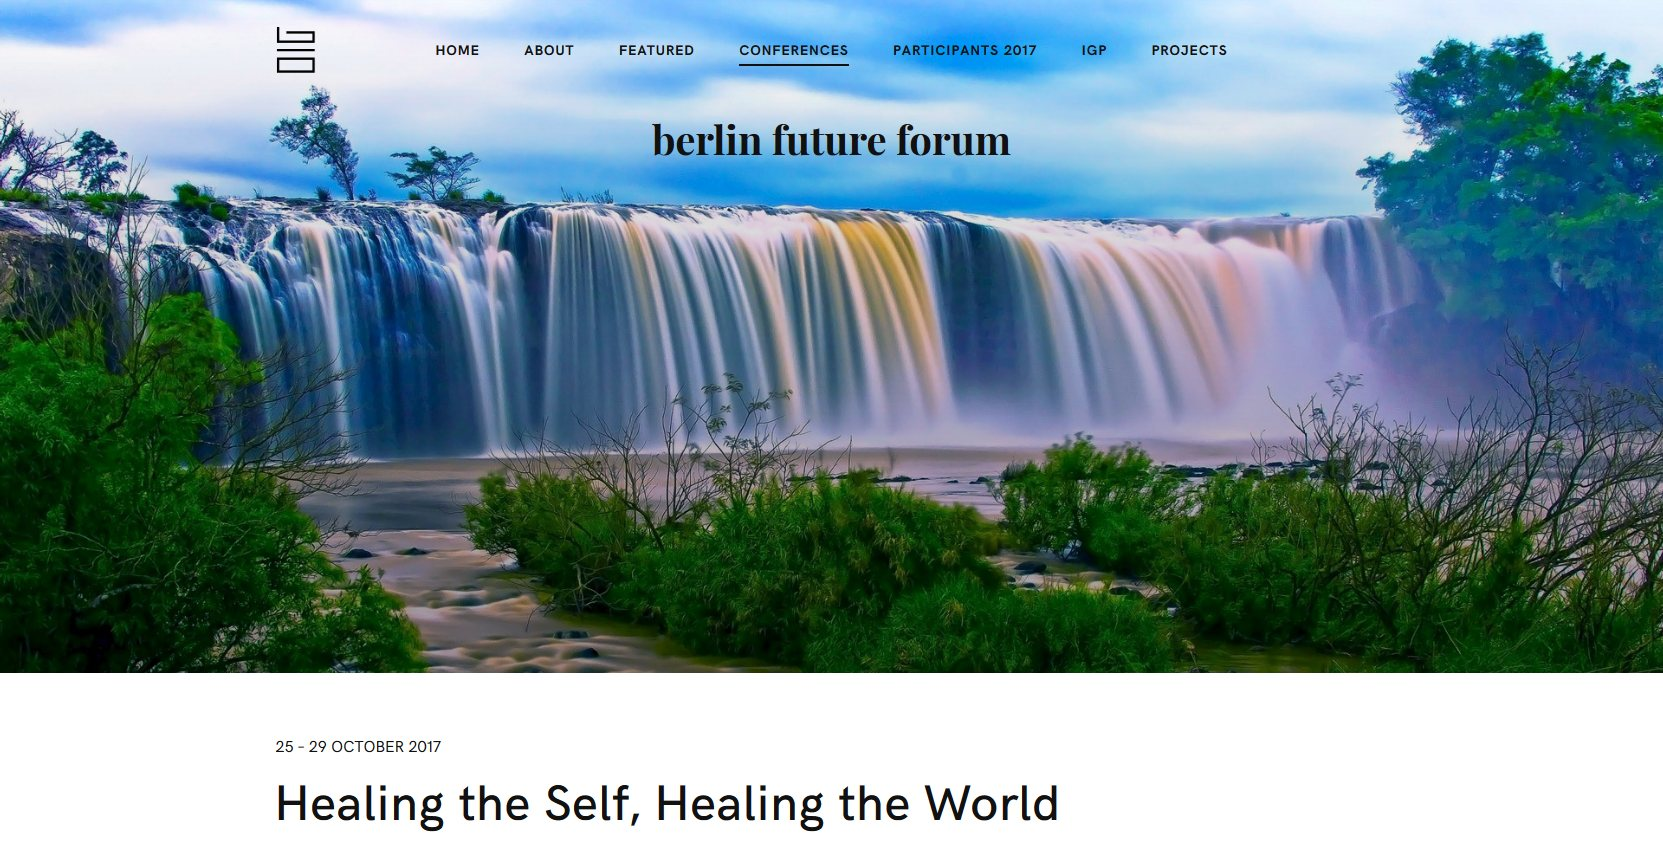 Healing_the_Self_Healing_the_World_ Berlin_Future_Forum